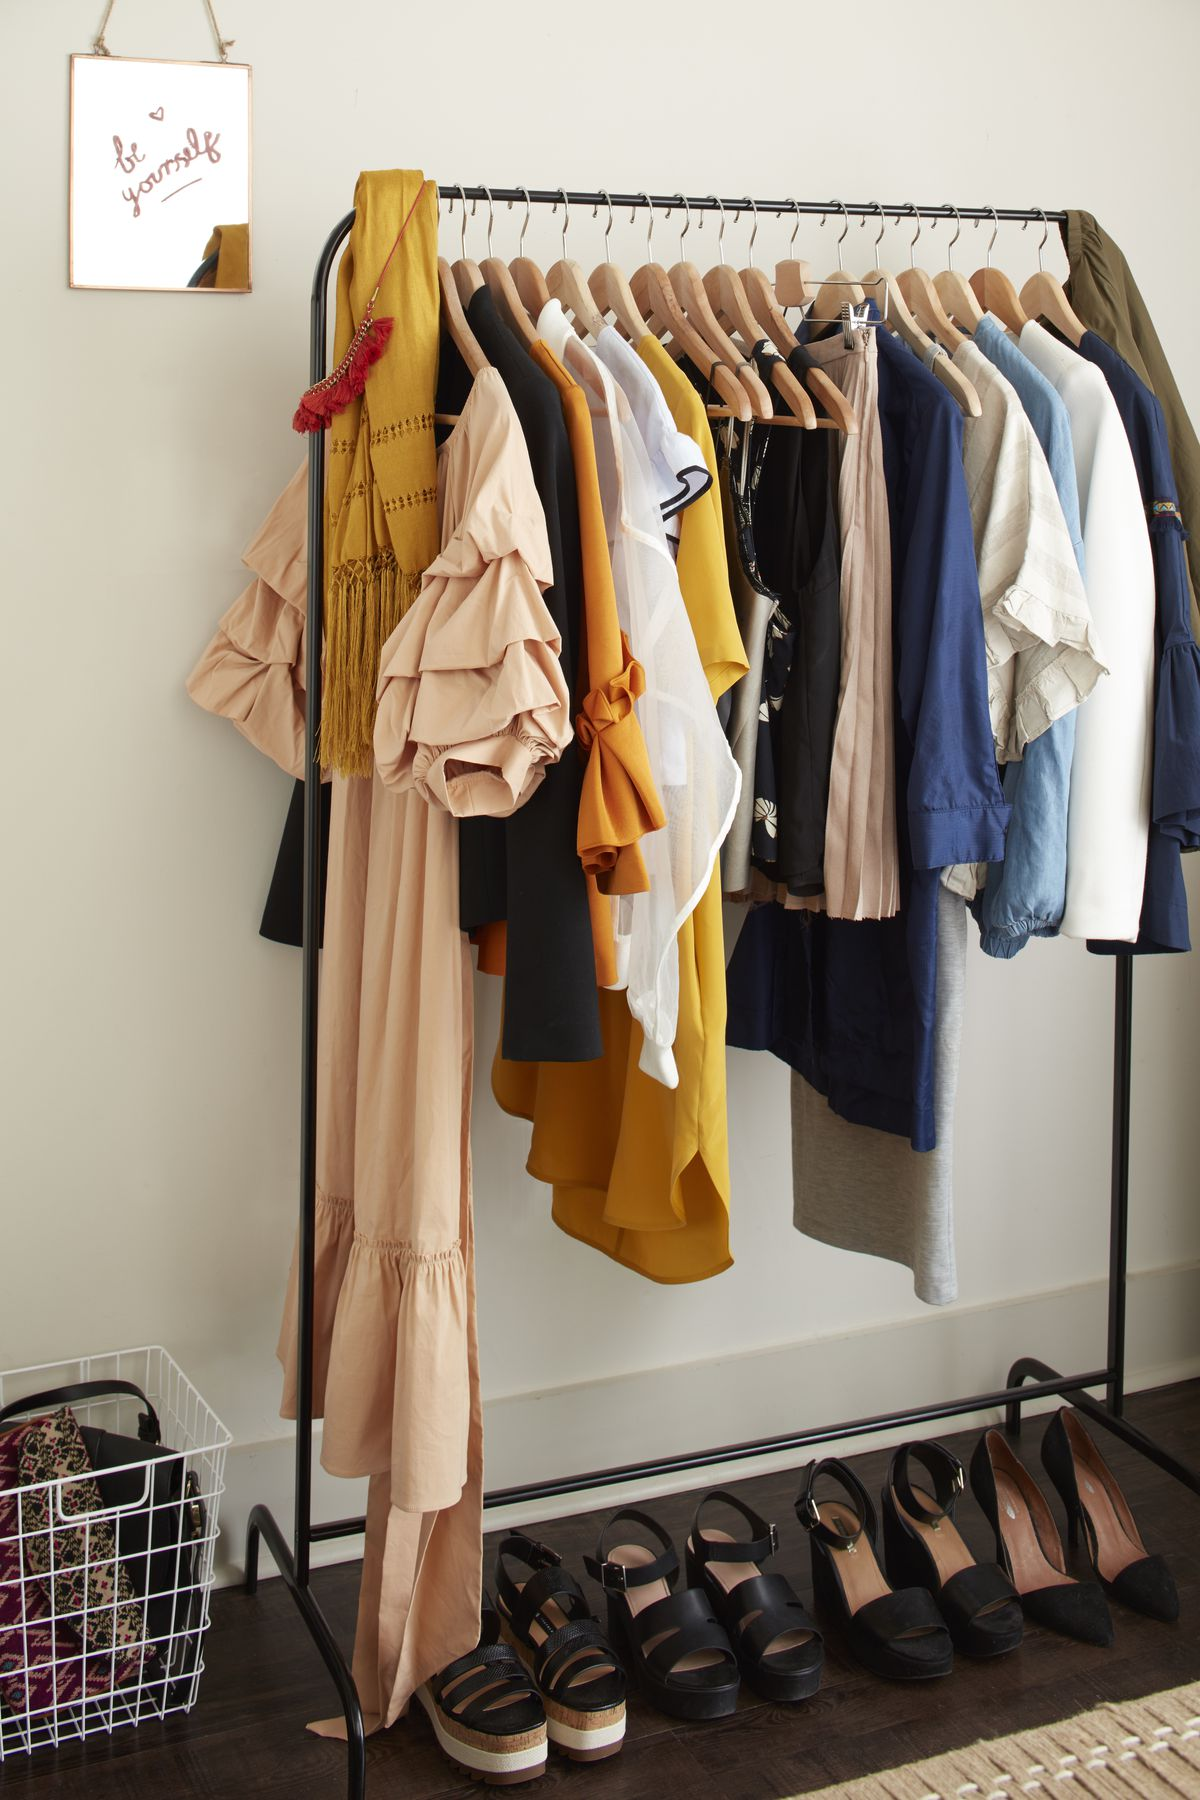 She stores the clothes she wears often on an open rack in the bedroom.